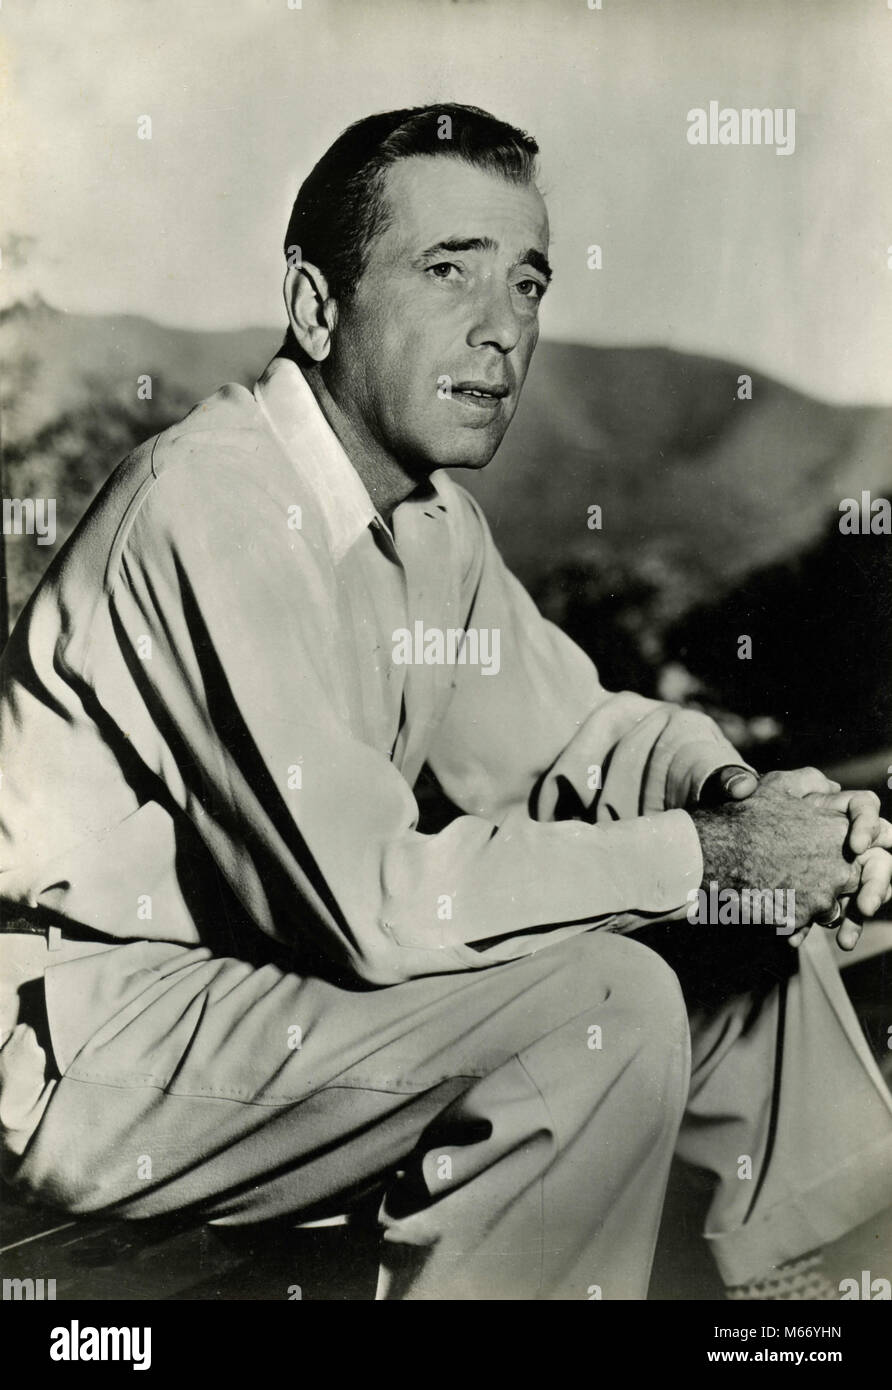 American actor Humphrey Bogart, 1930s - Stock Image